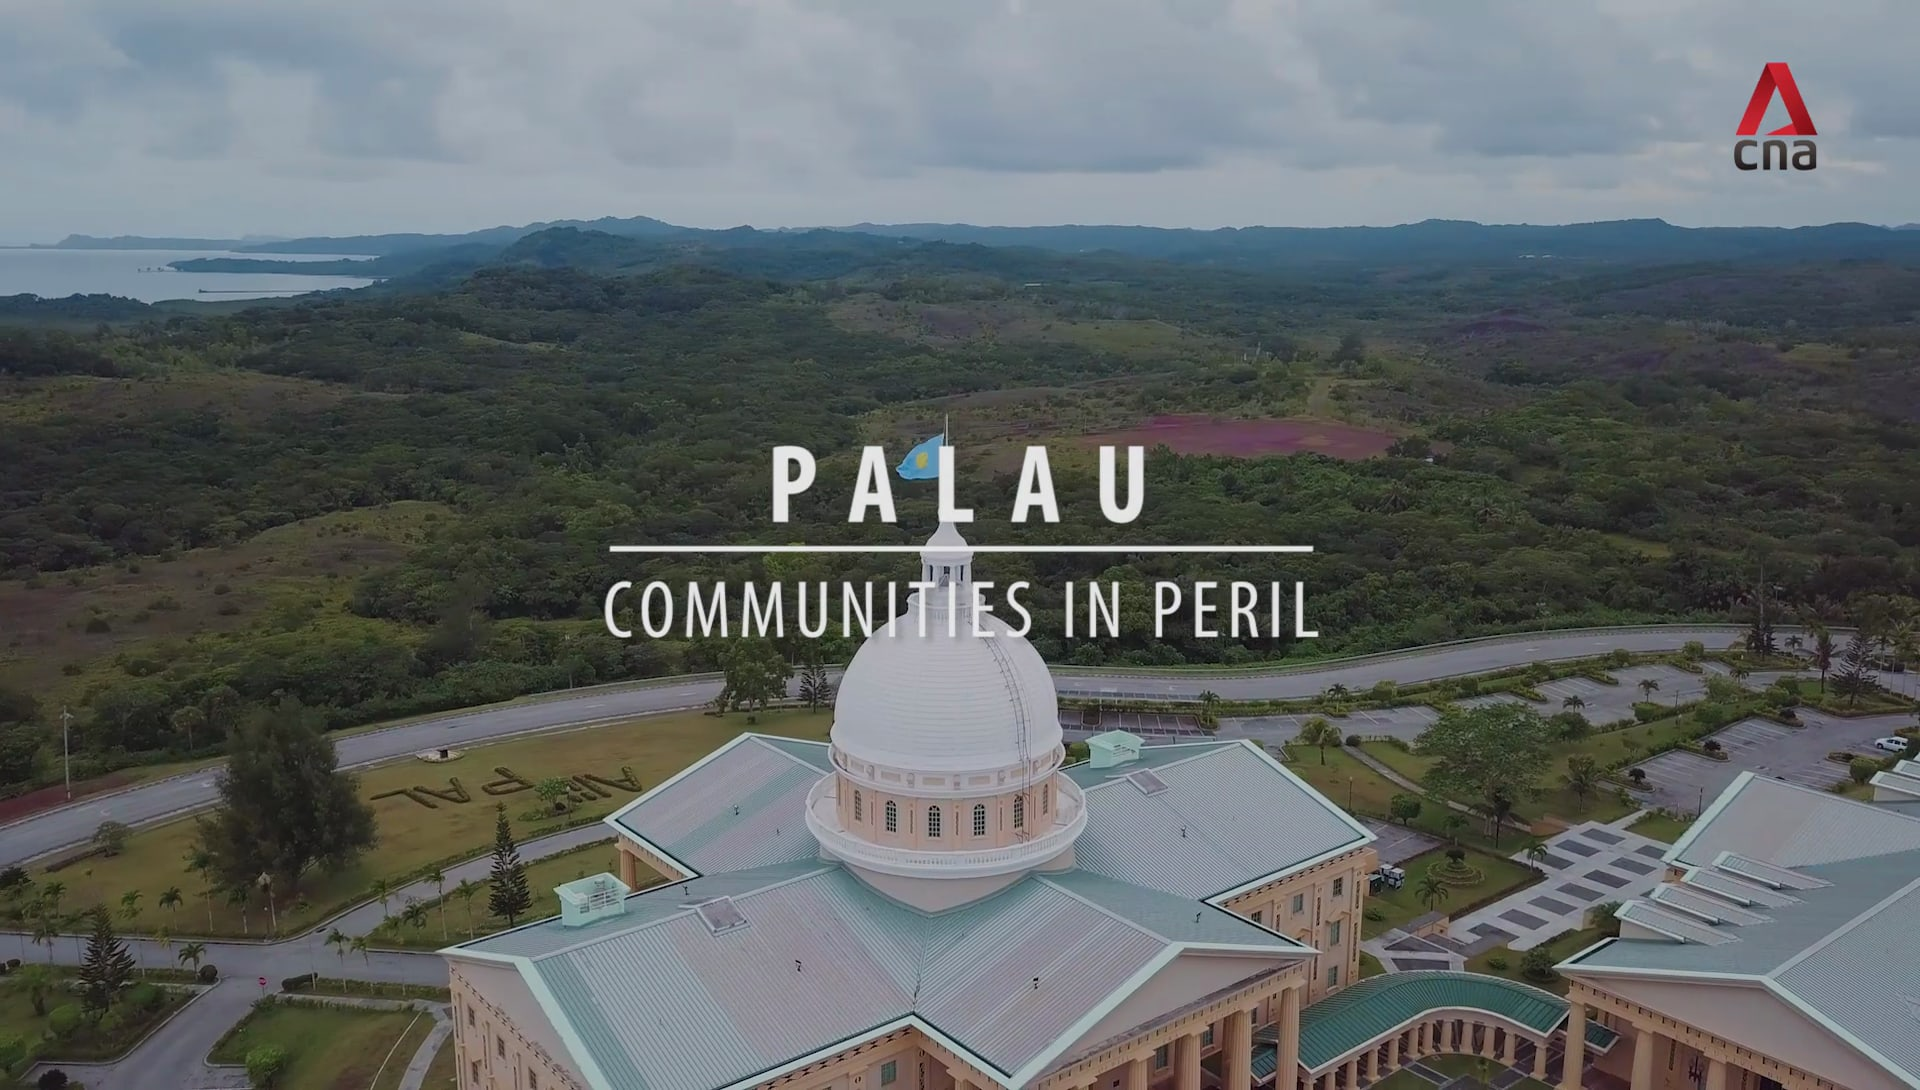 Palau: Communities in peril | Video